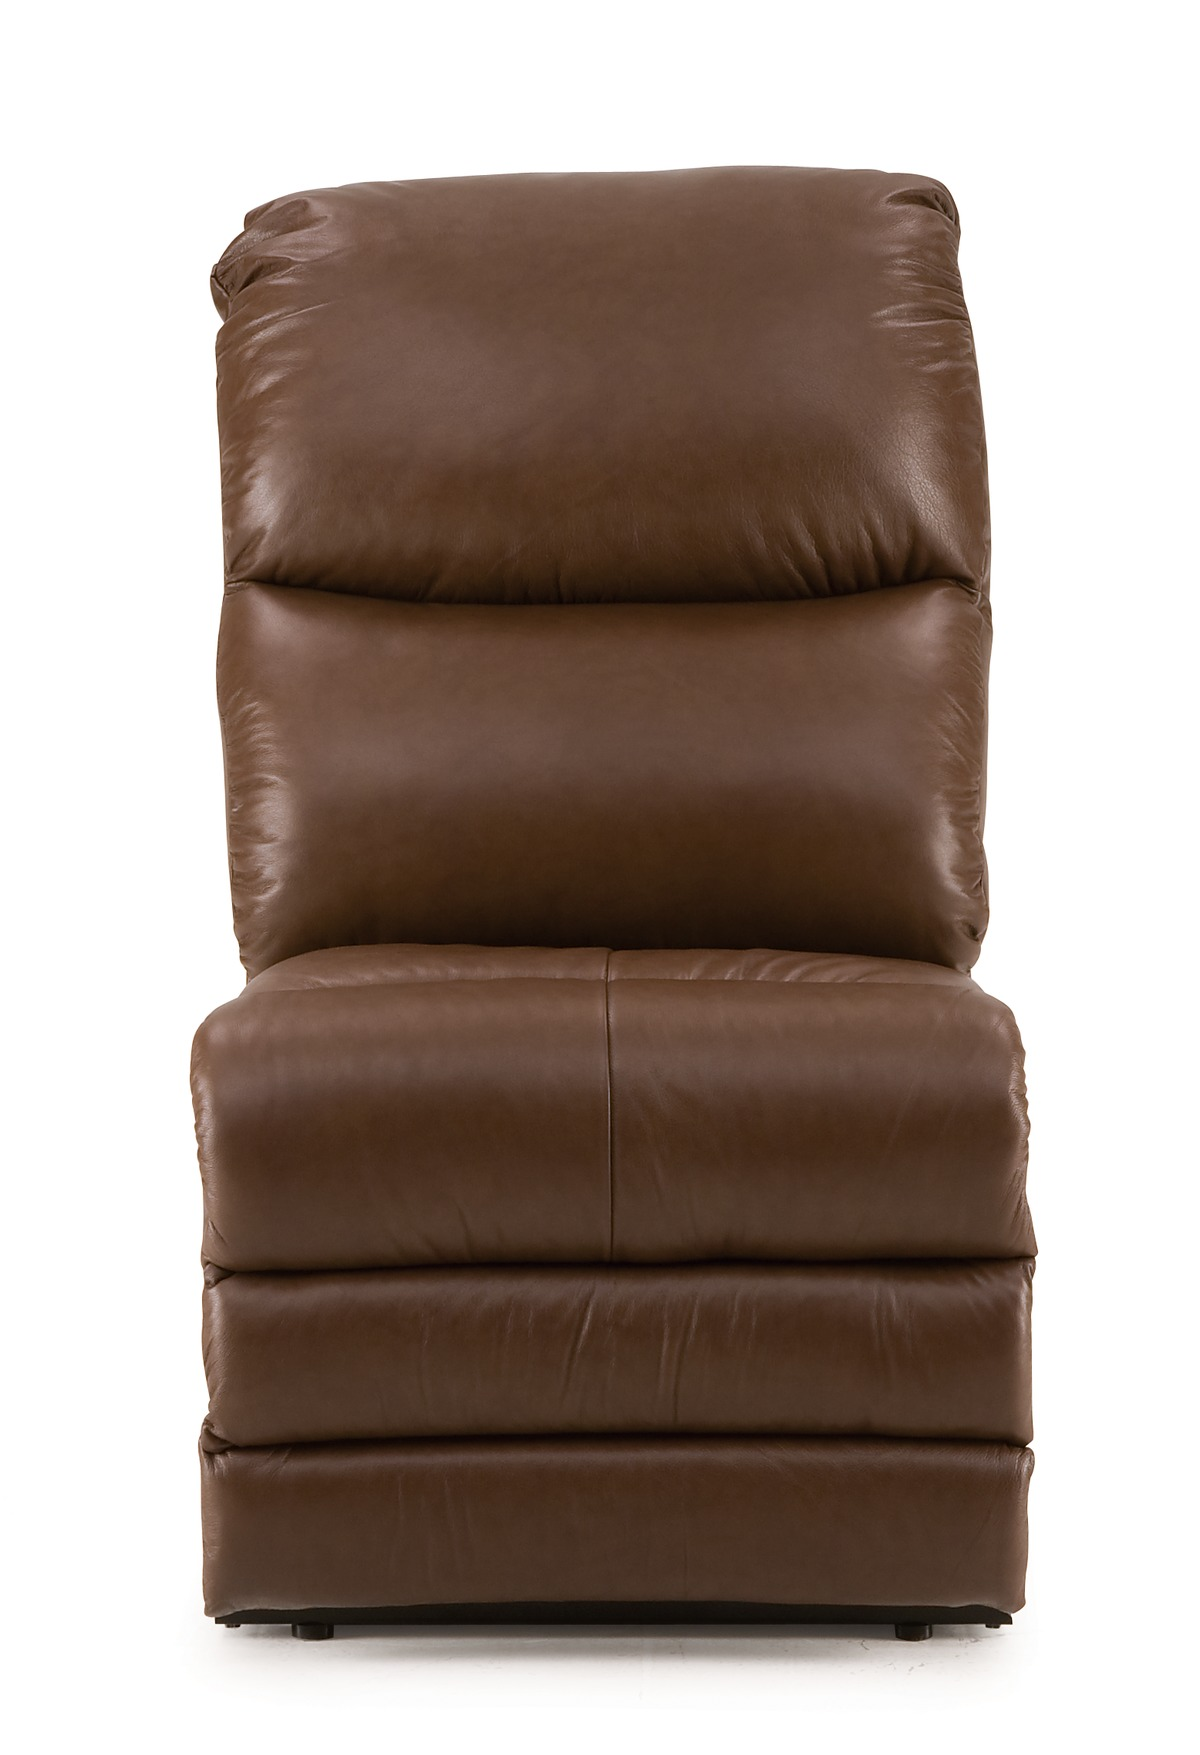 Palliser® Furniture Divo Power Armless Recliner 41045 60